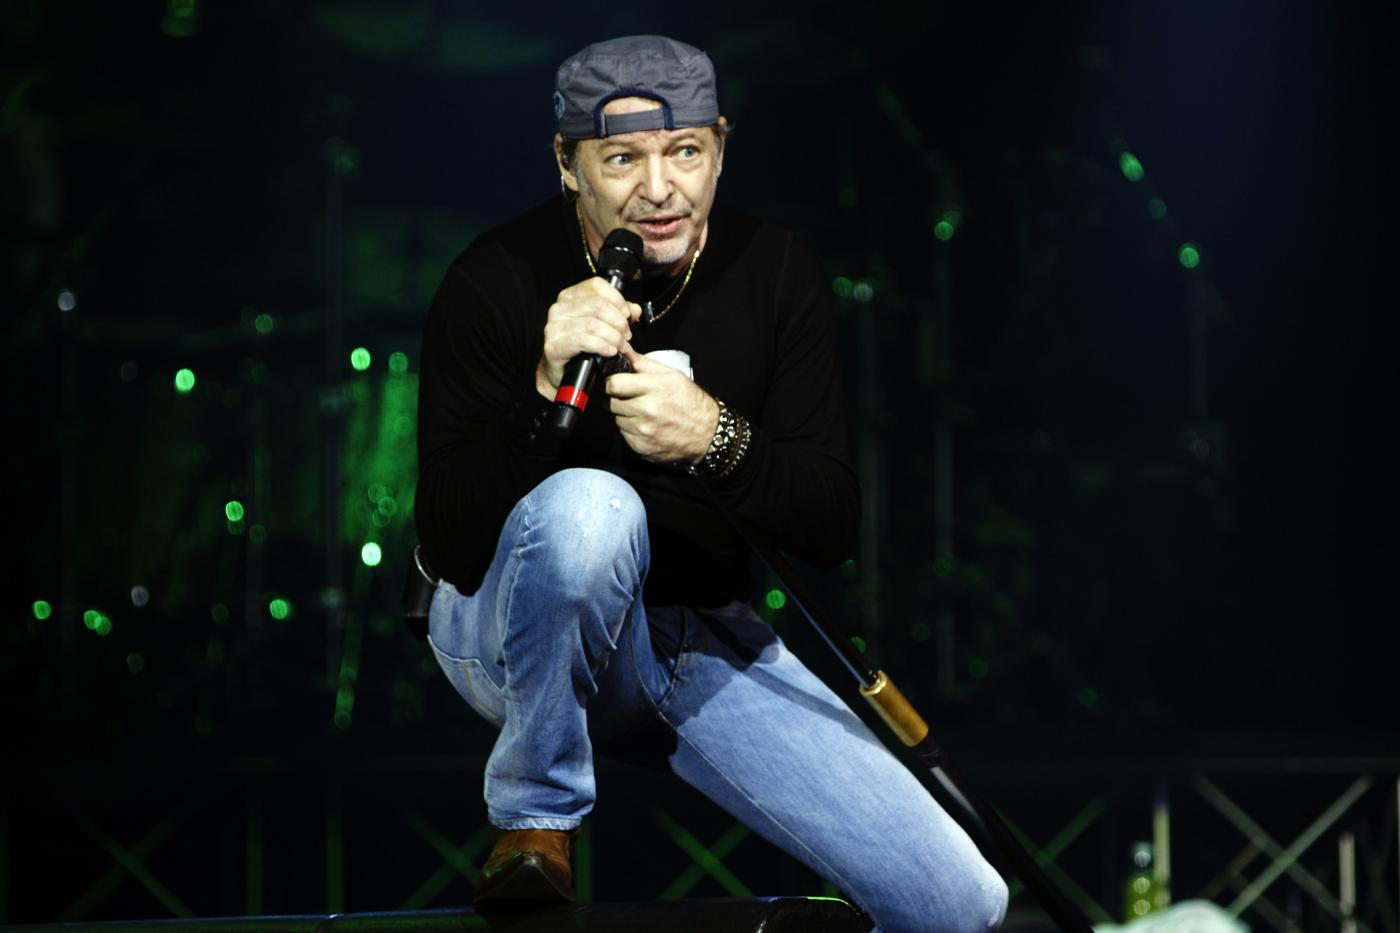 Vasco Rossi Torrent Vasco Rossi Live Video Search Engine At Search